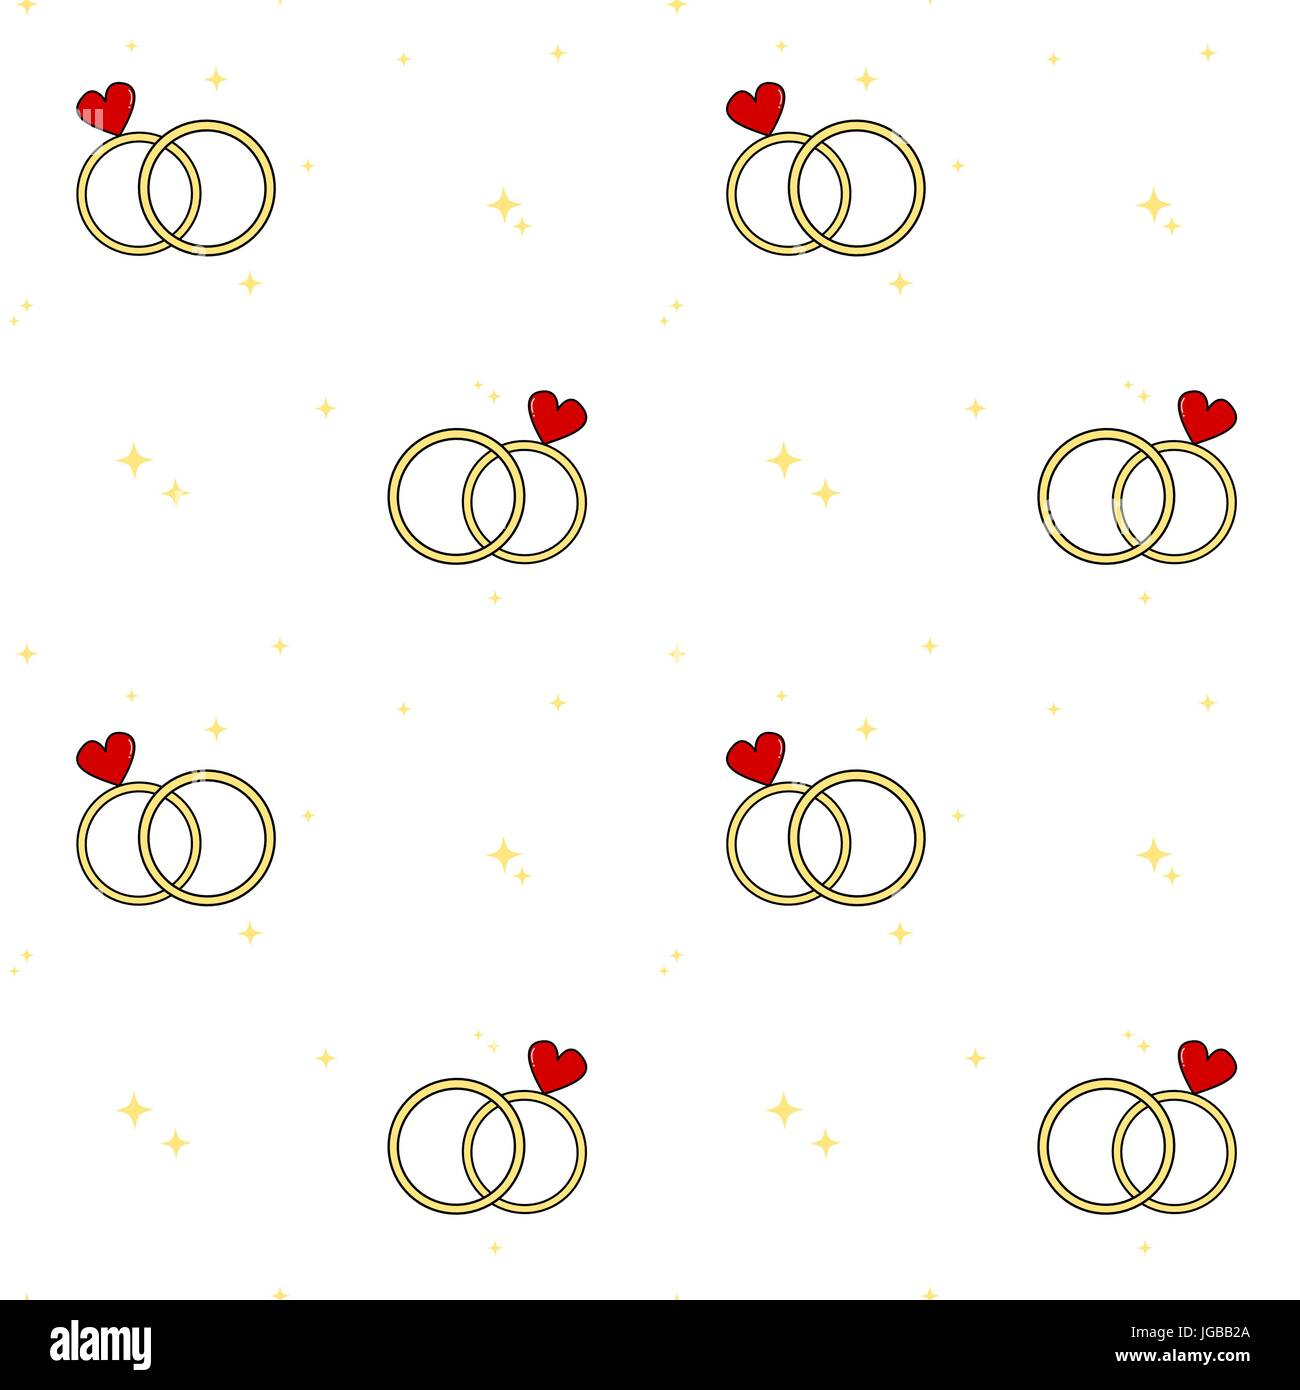 Cute Cartoon Wedding Day Rings Seamless Vector Pattern Background Stock Vector Image Art Alamy